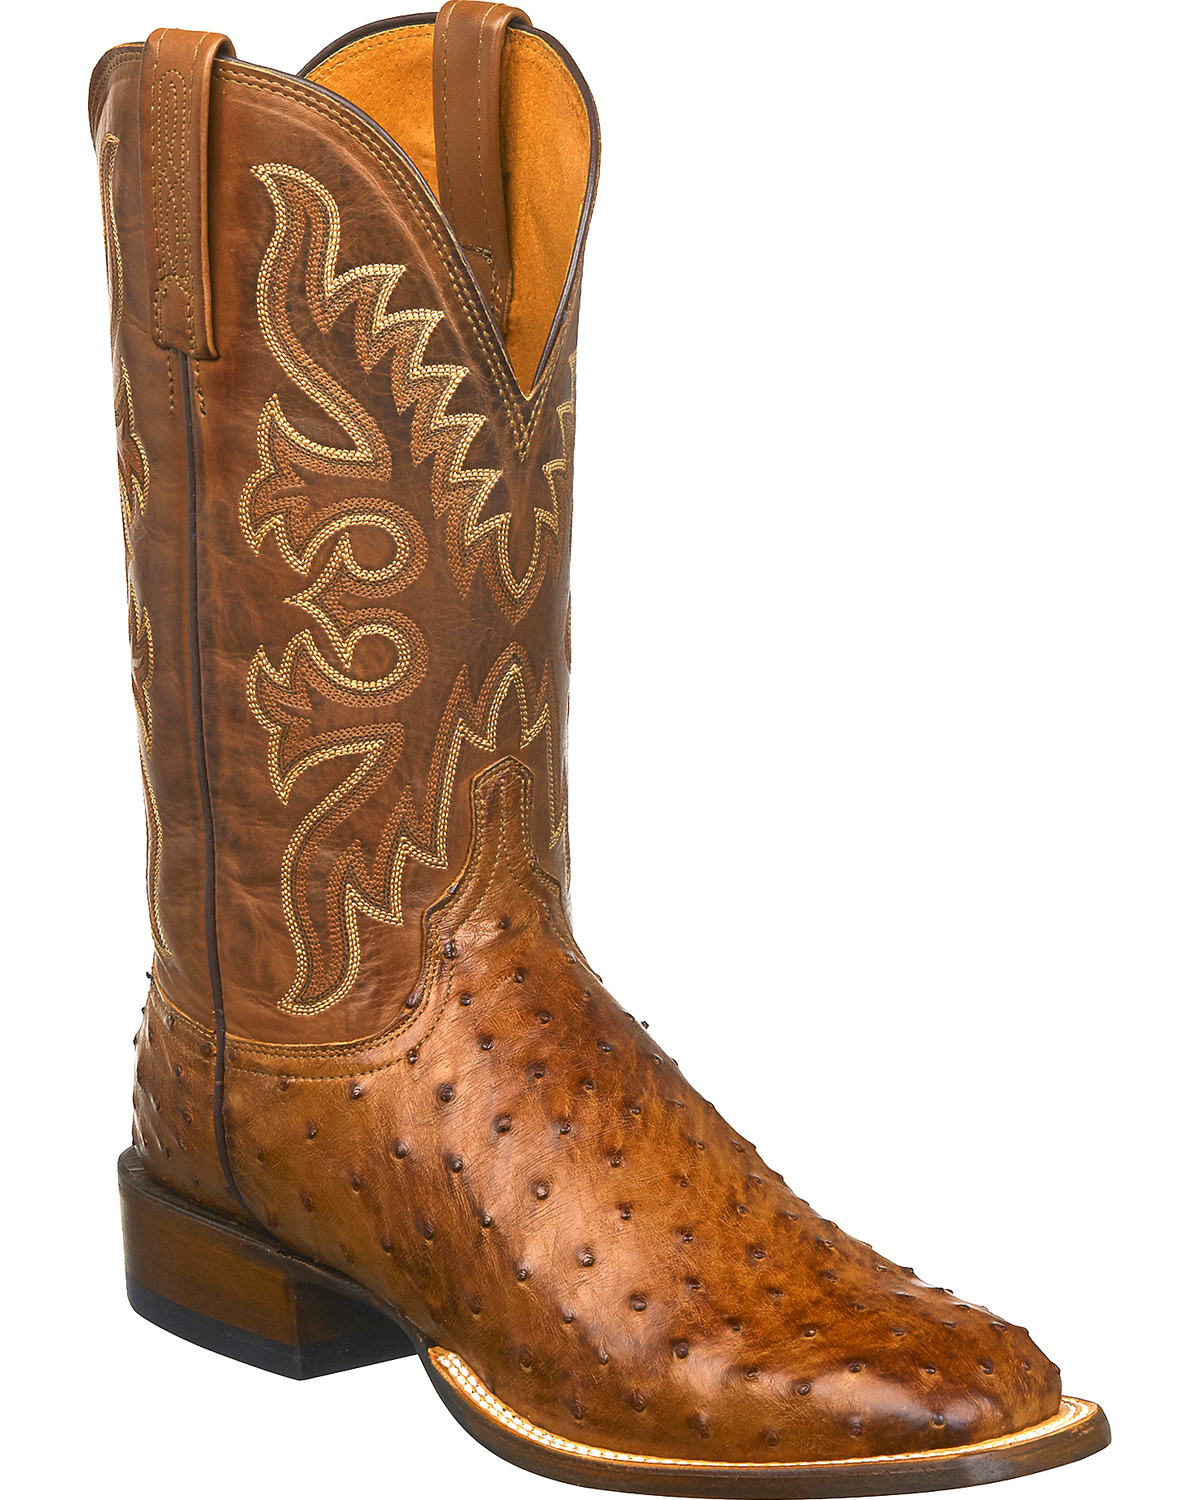 Western Wear, Cowboy Boots, Wrangler Jeans, Levis Jean, Justin Boot, Ariat, Corral Boots, Cowboy Hats, Miss Me Jeans, Work Boots, and Cowboy Shirts by Sheplers.